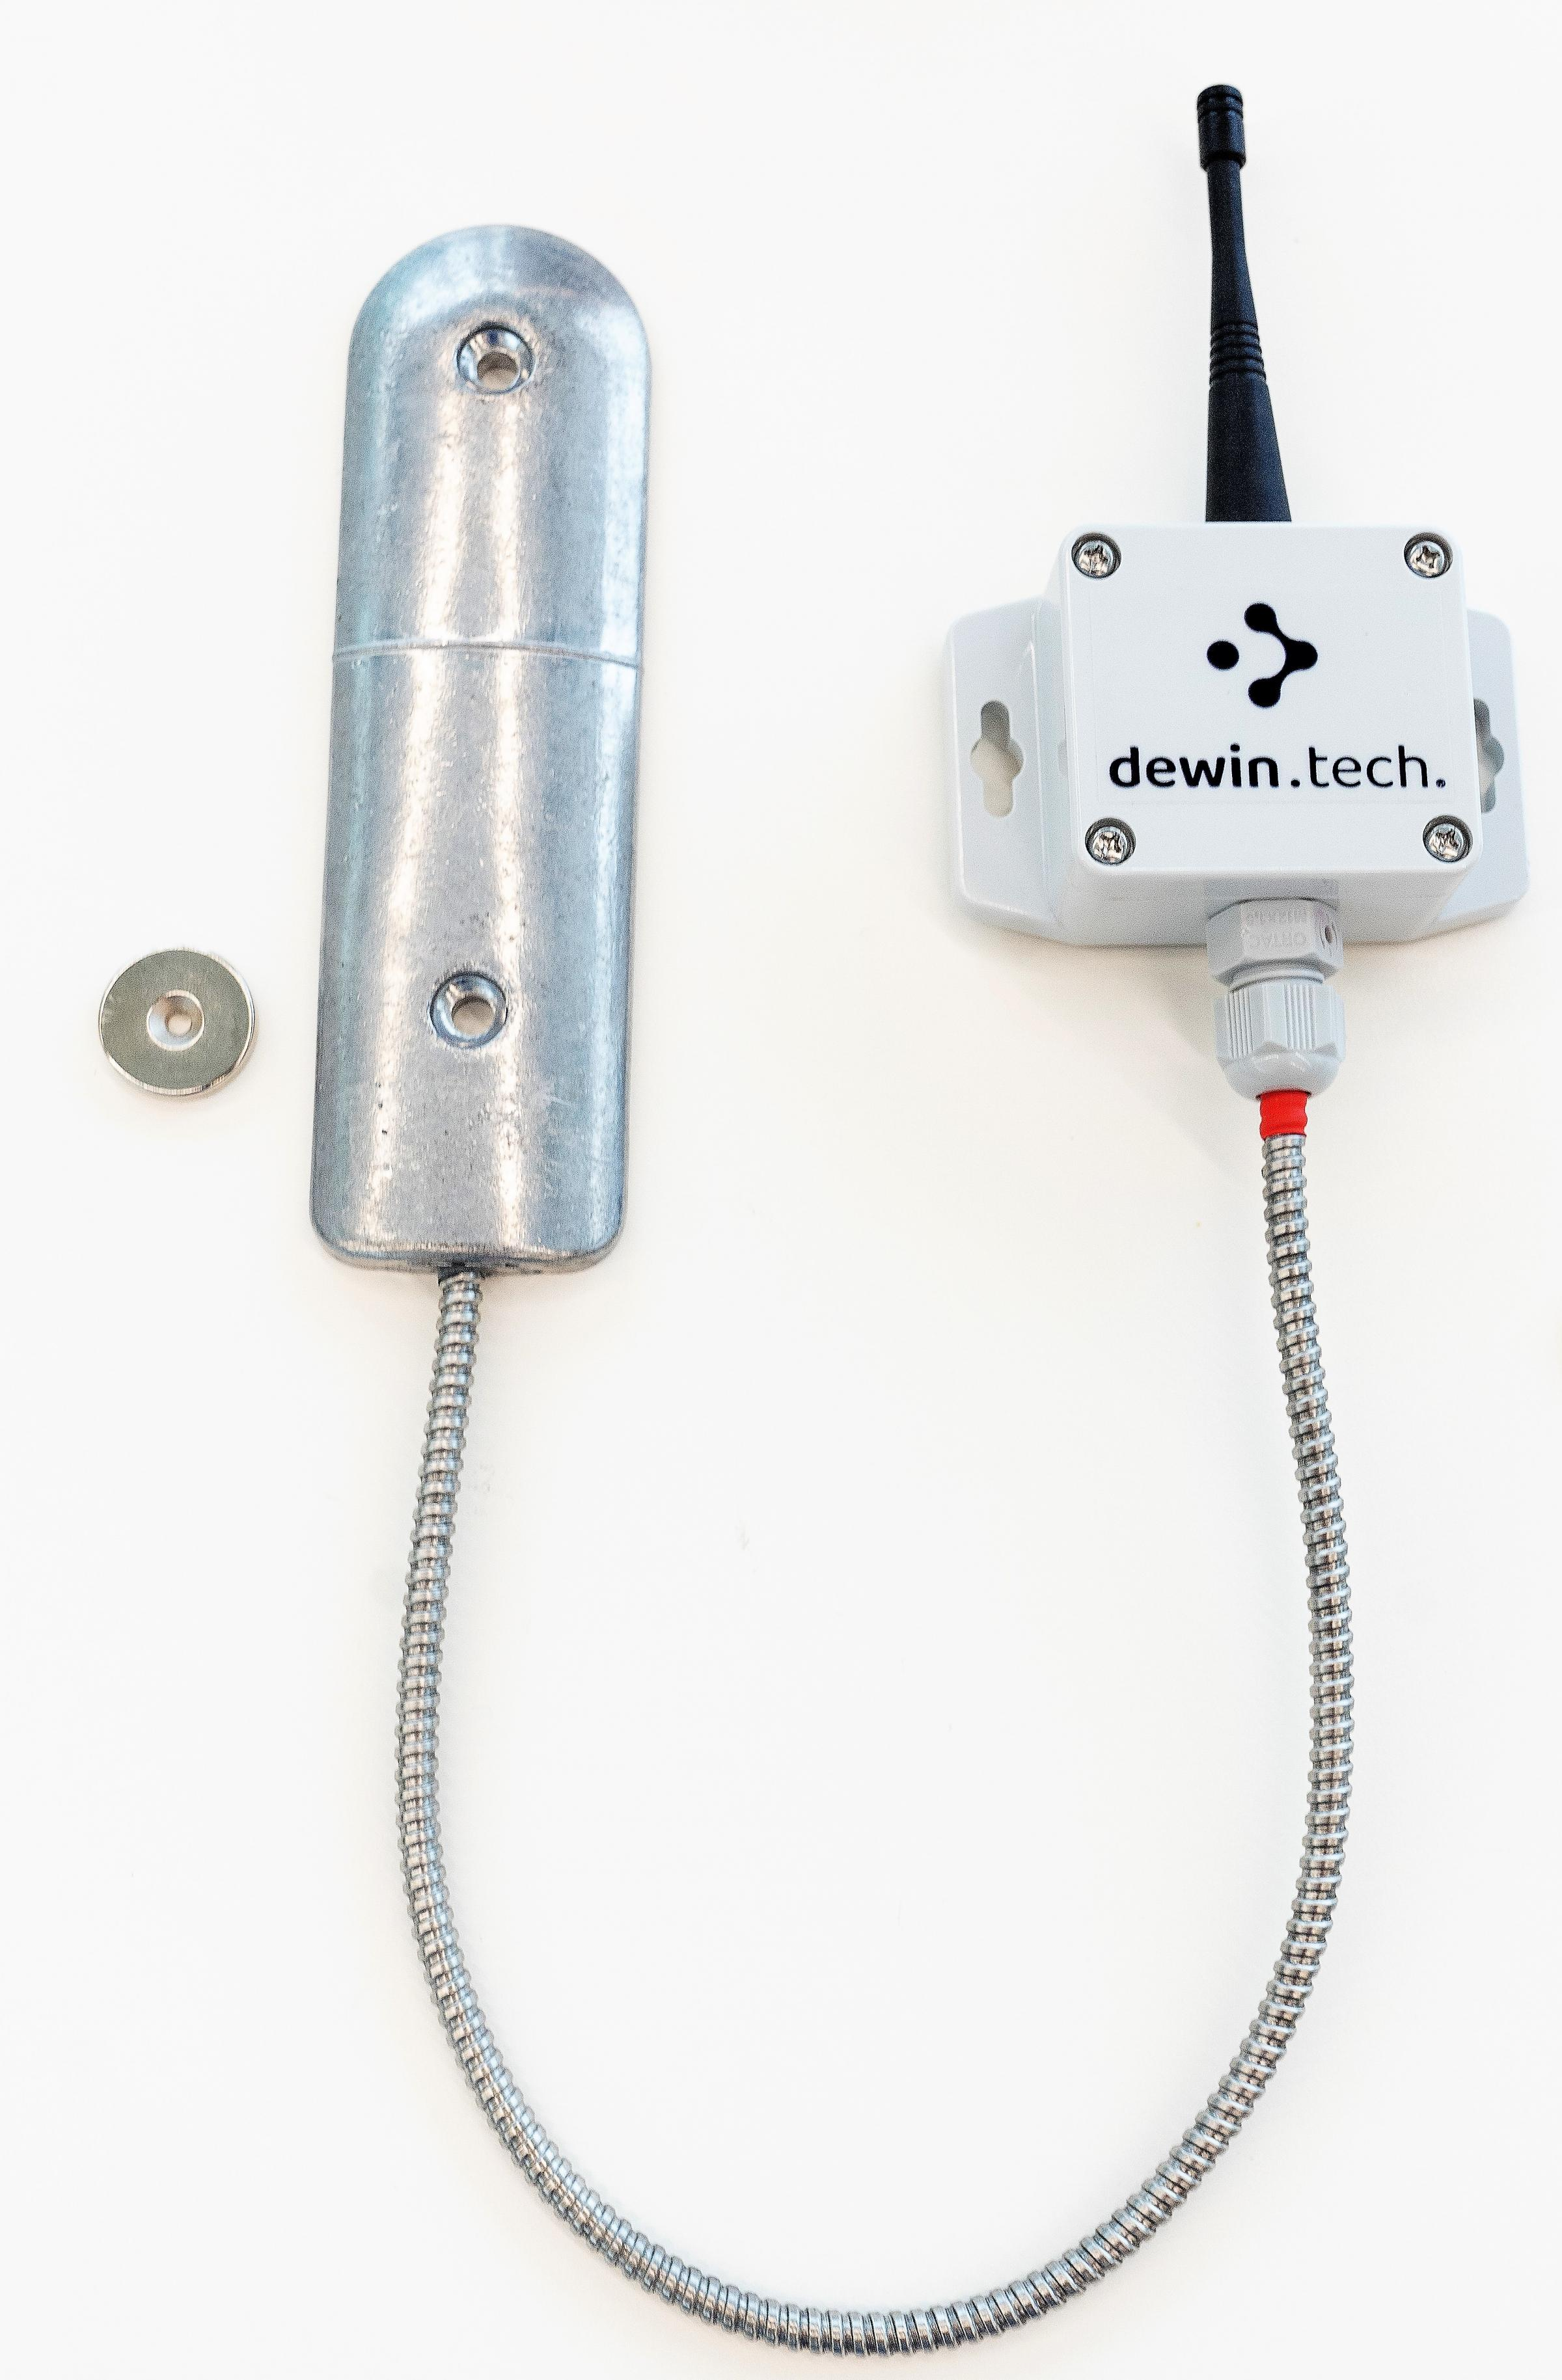 The Dewin Open:Close technology is targeted at the agricultural, utilities, and environmental sectors.